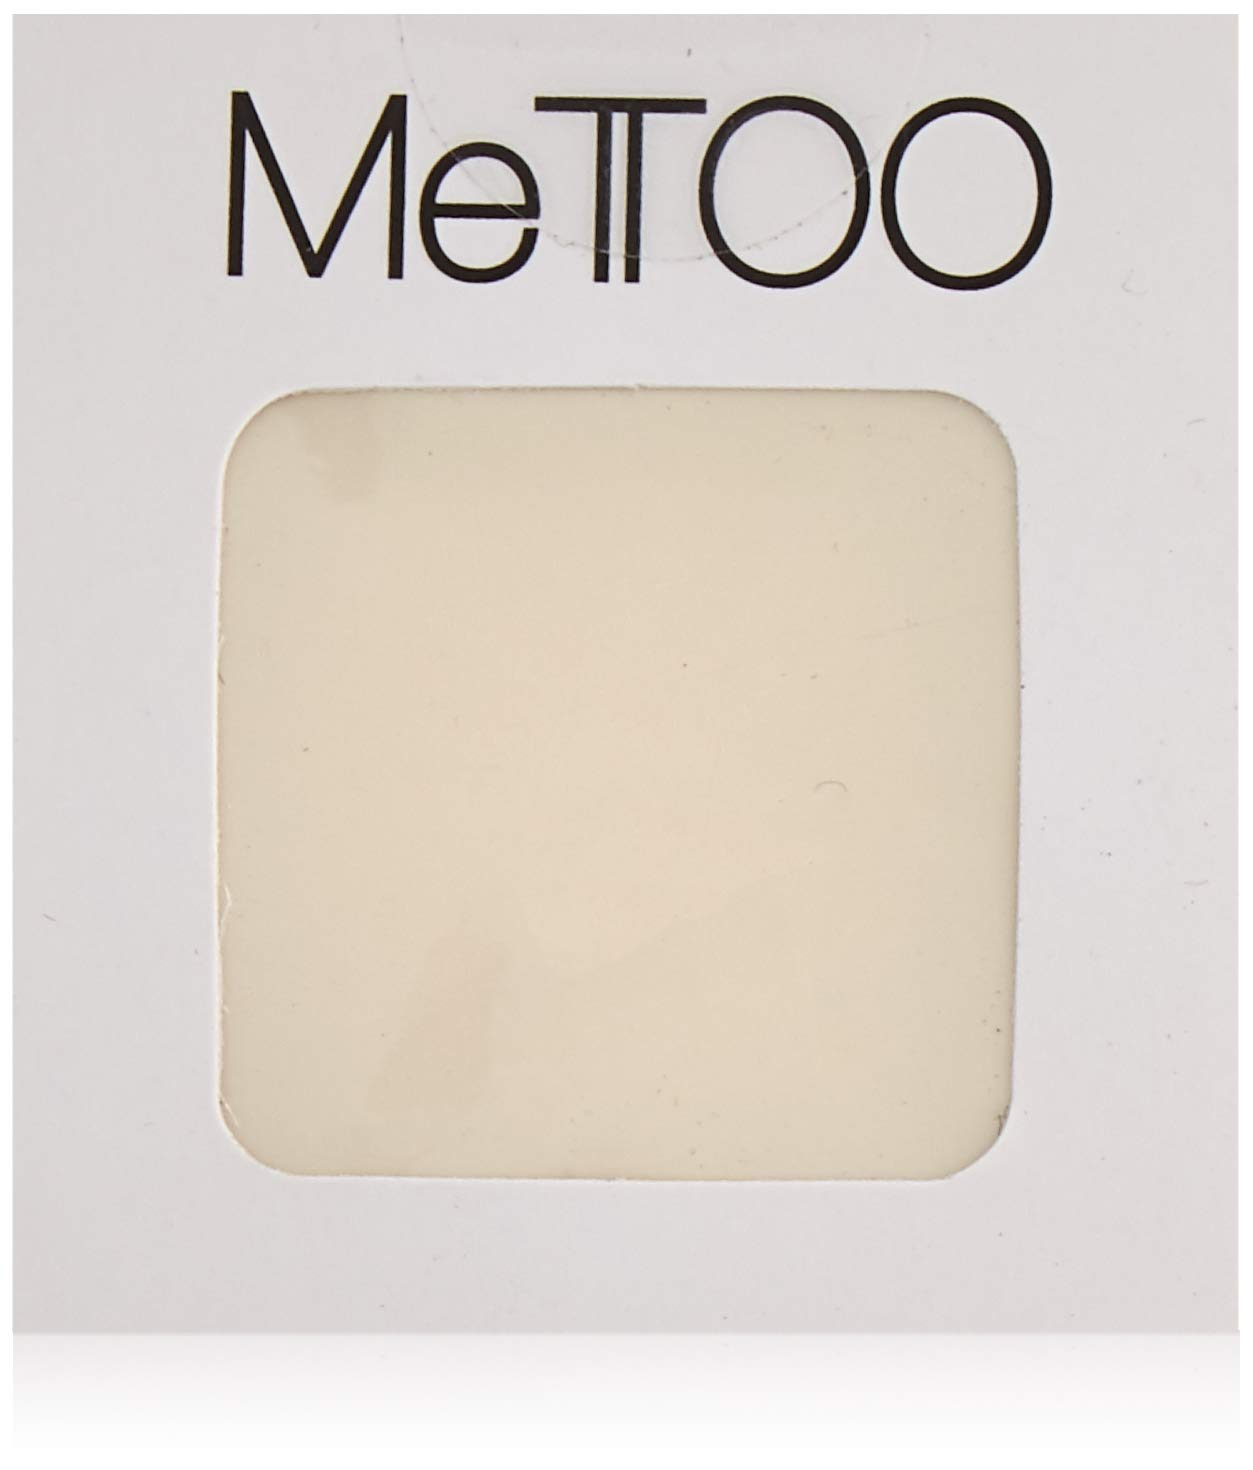 Mettoo Tattoo Cover Light Body Foil Pro, 200 Count by Mettoo